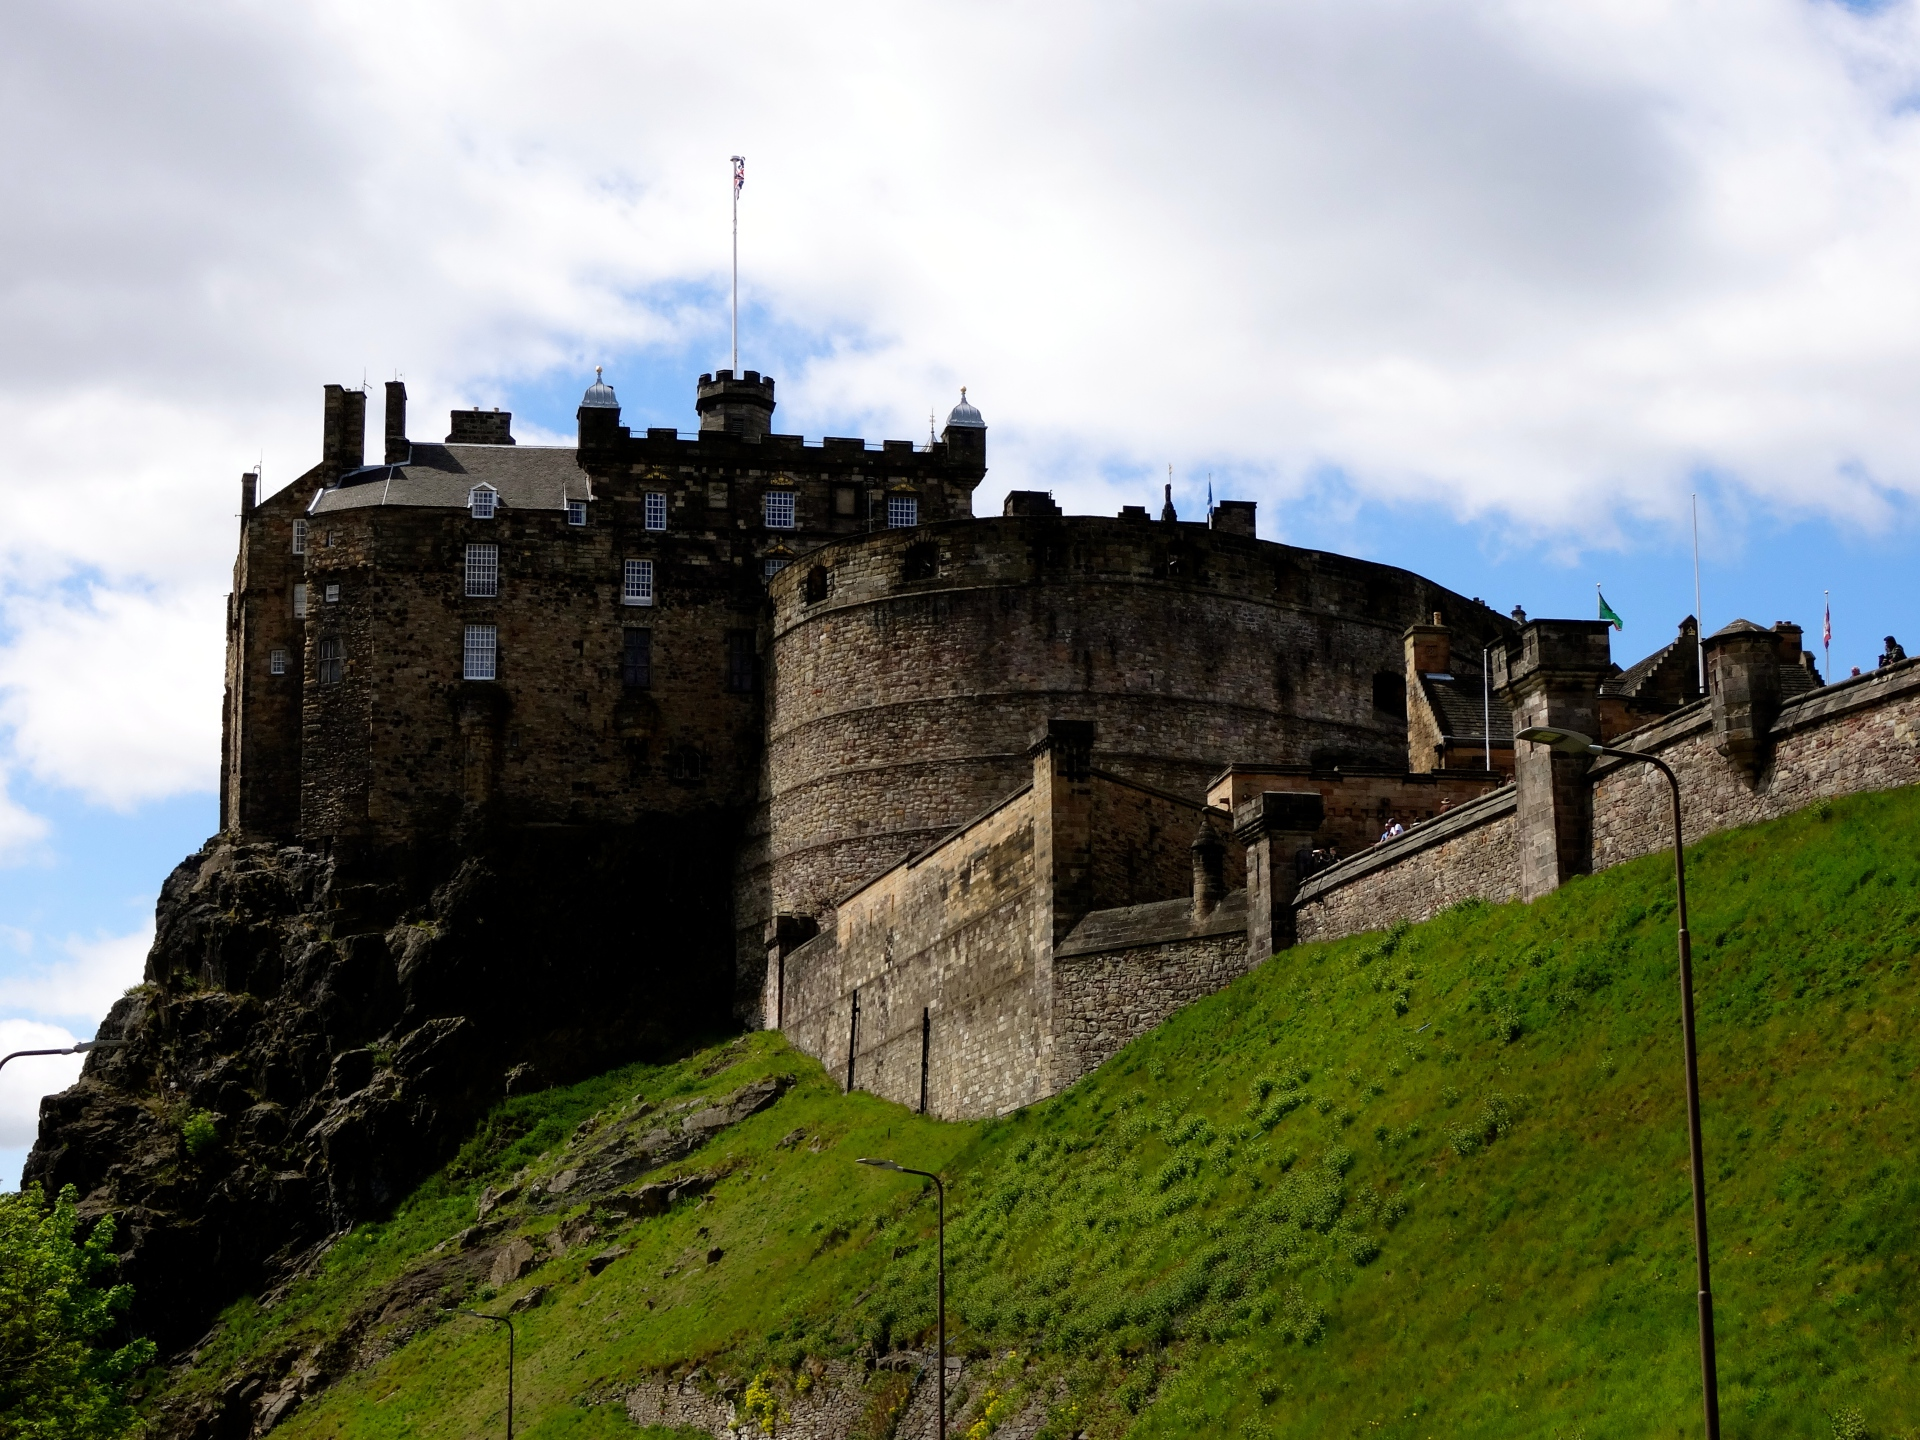 """Ballroom Dancing and Hopscotch: The Night of """"Why Not?"""" in Edinburgh"""